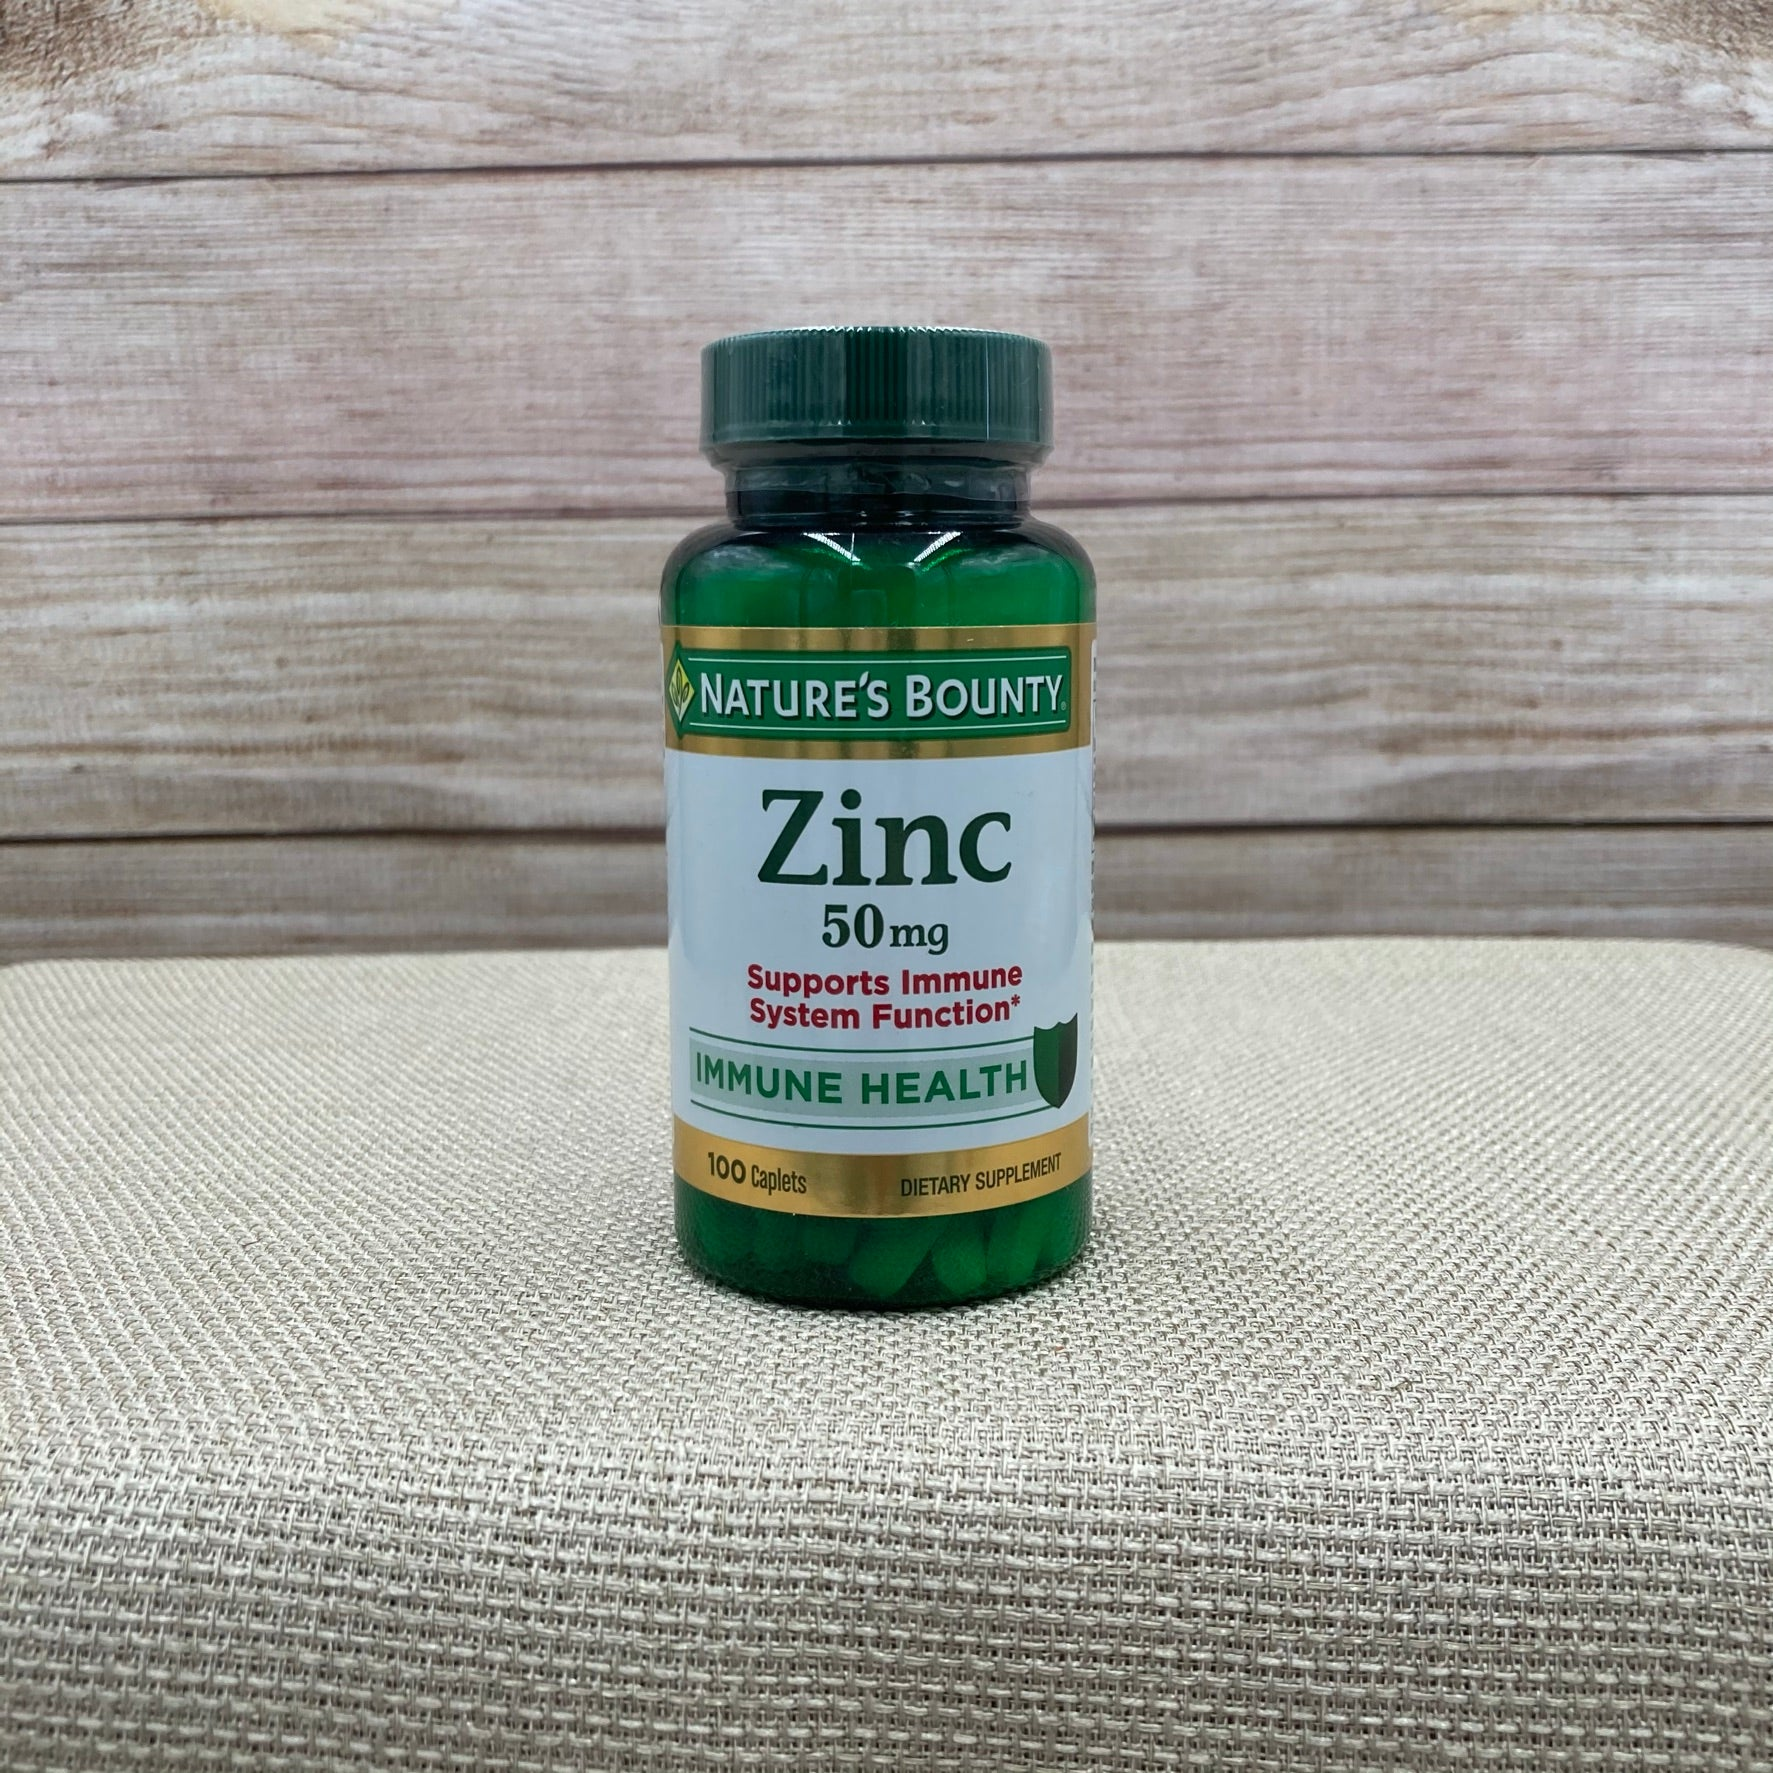 Nature's Bounty Zinc (50 mg) 100 caplets